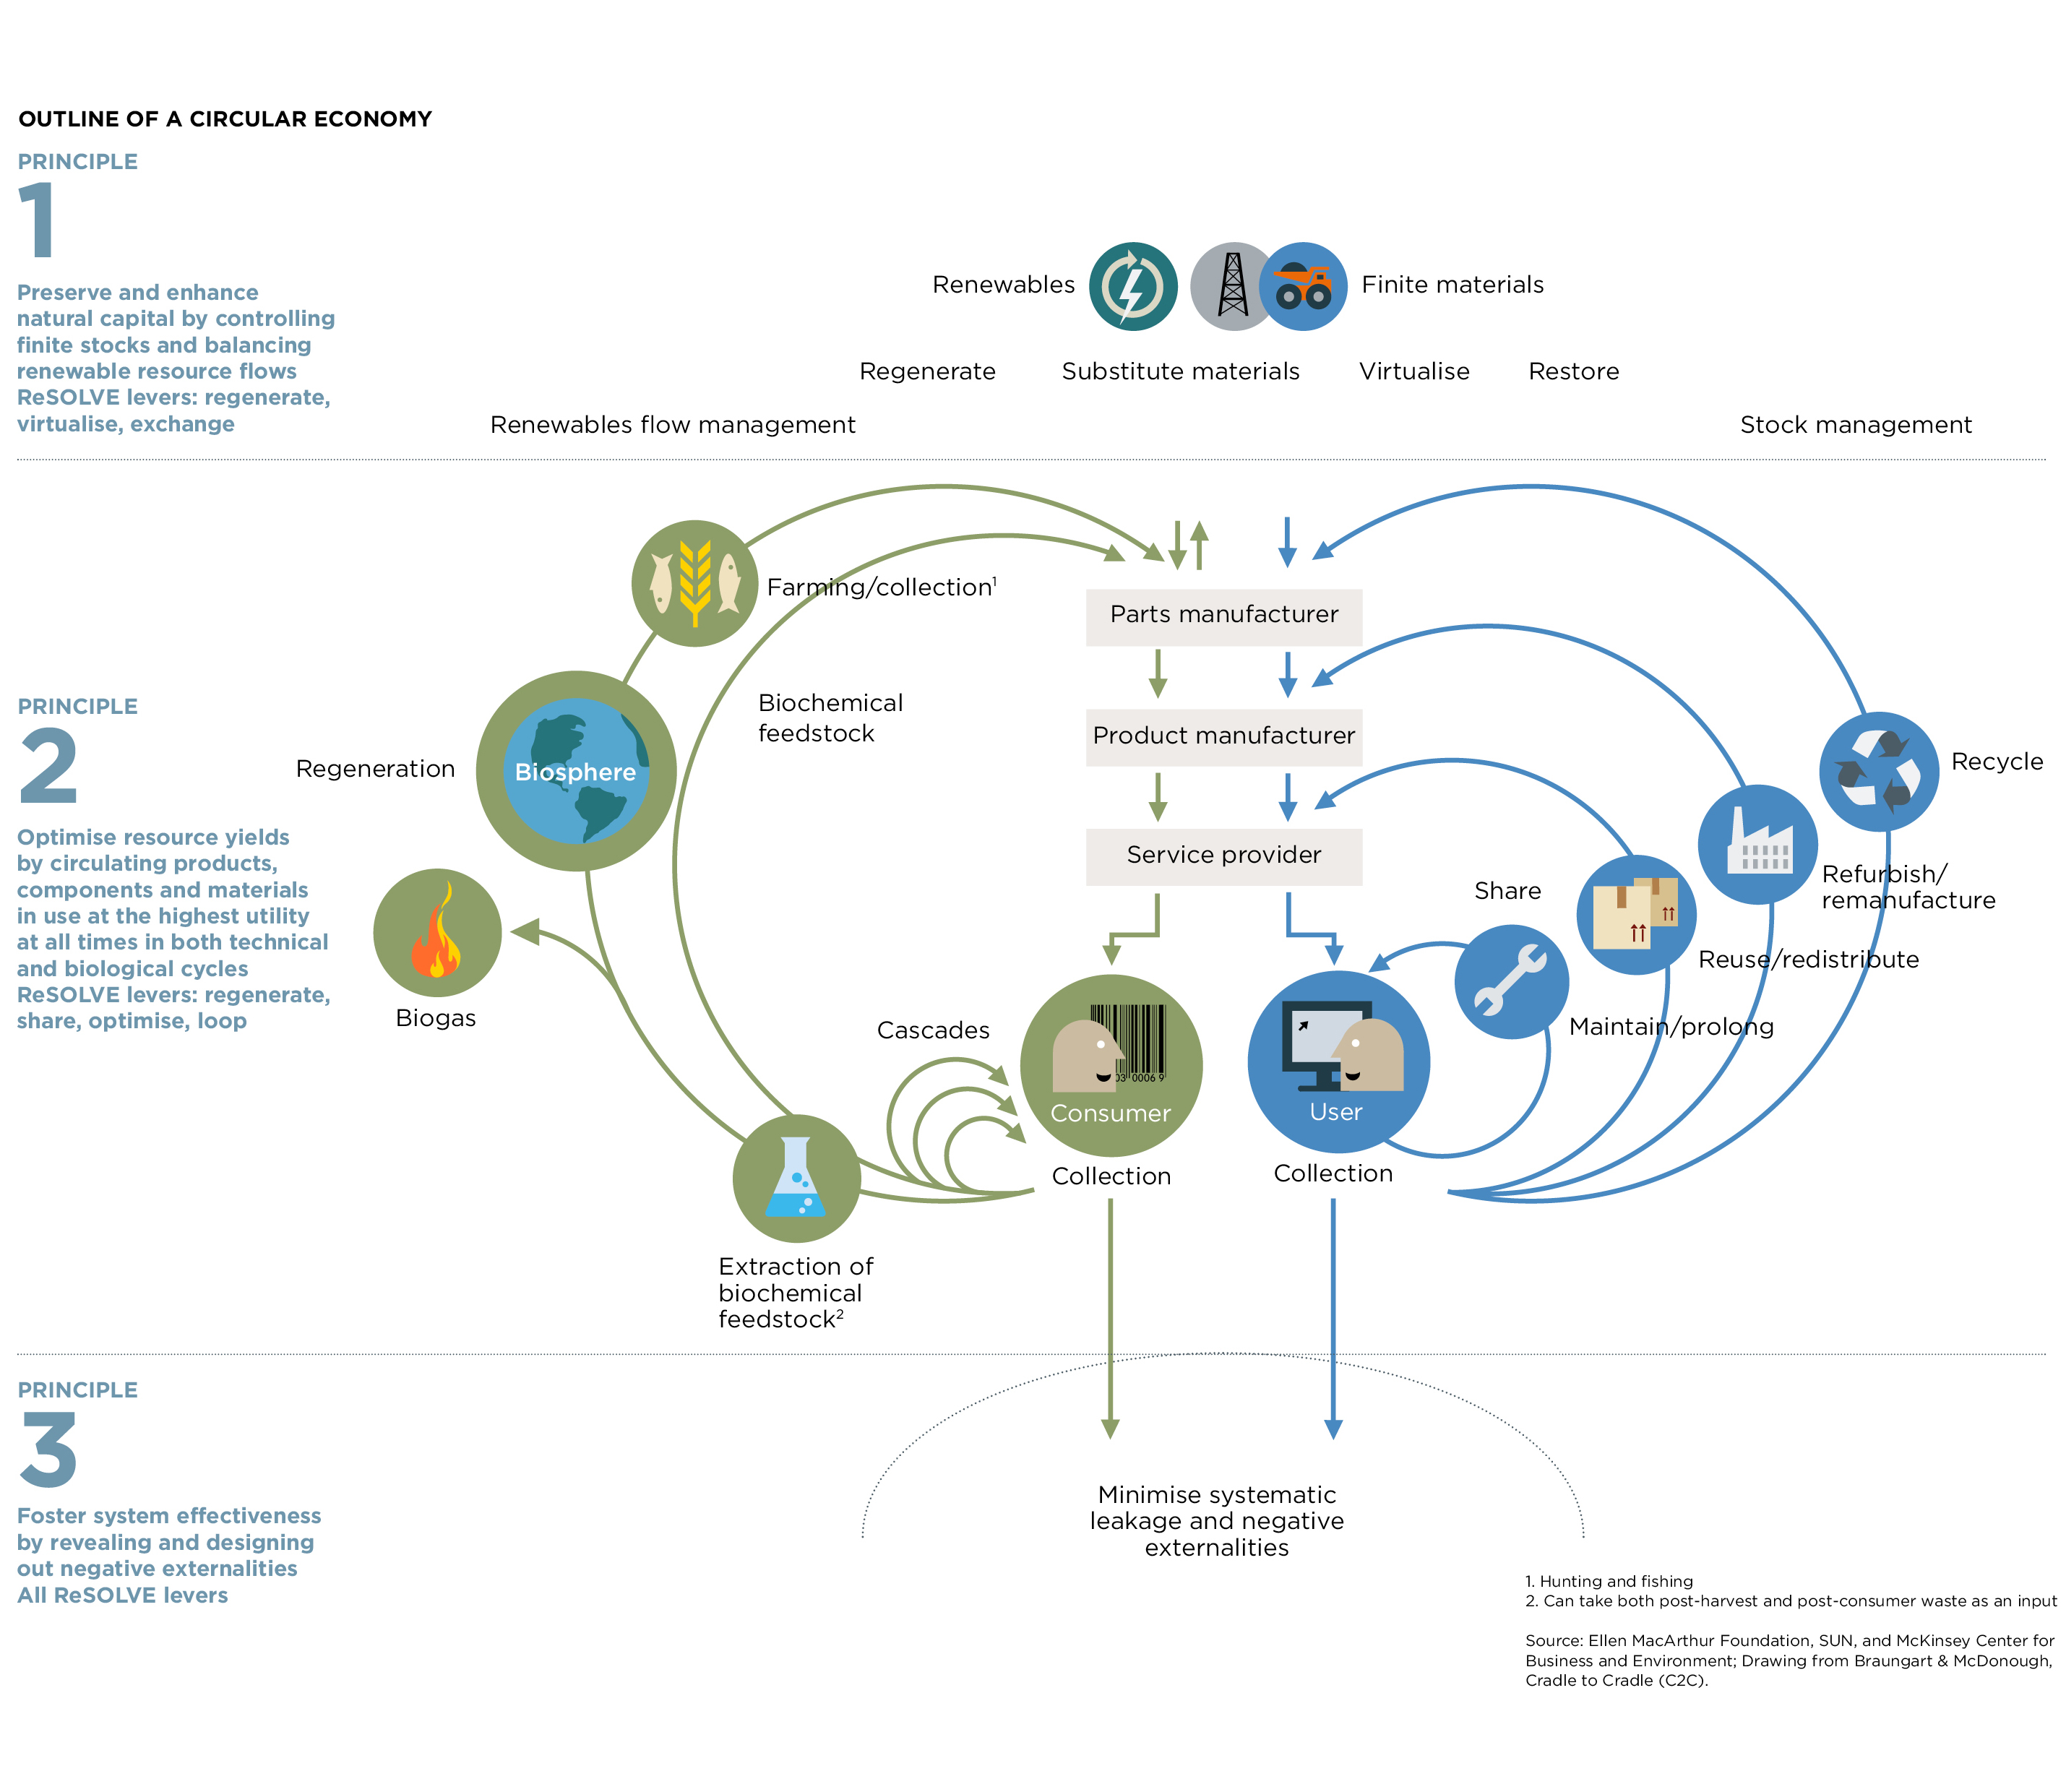 Circular Economy for Sustainable Growth 15 cr - Spring 2021